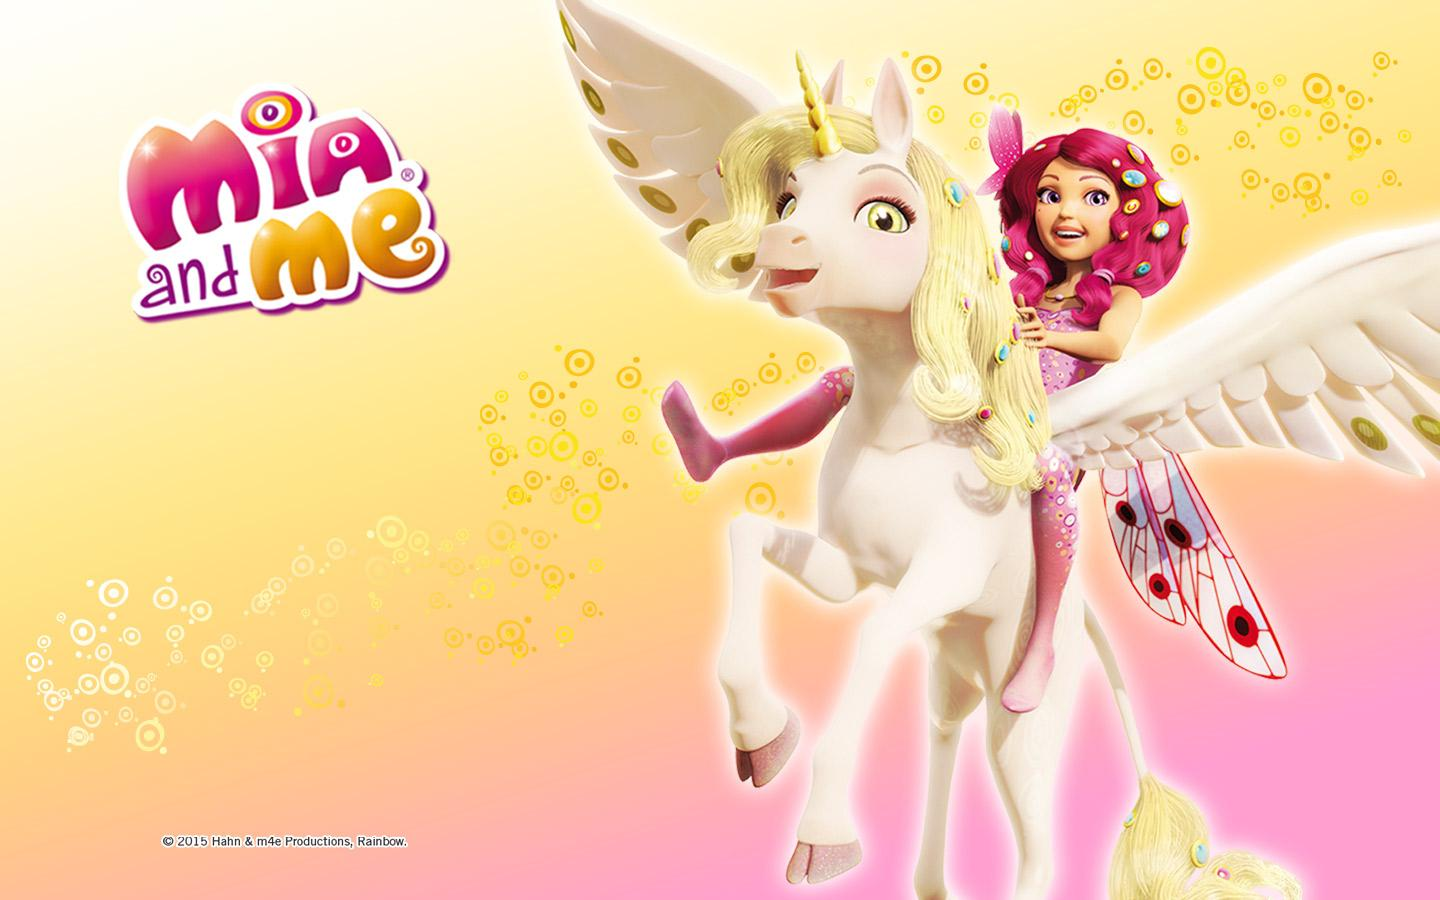 mia and me wallpapers  wallpaper cave